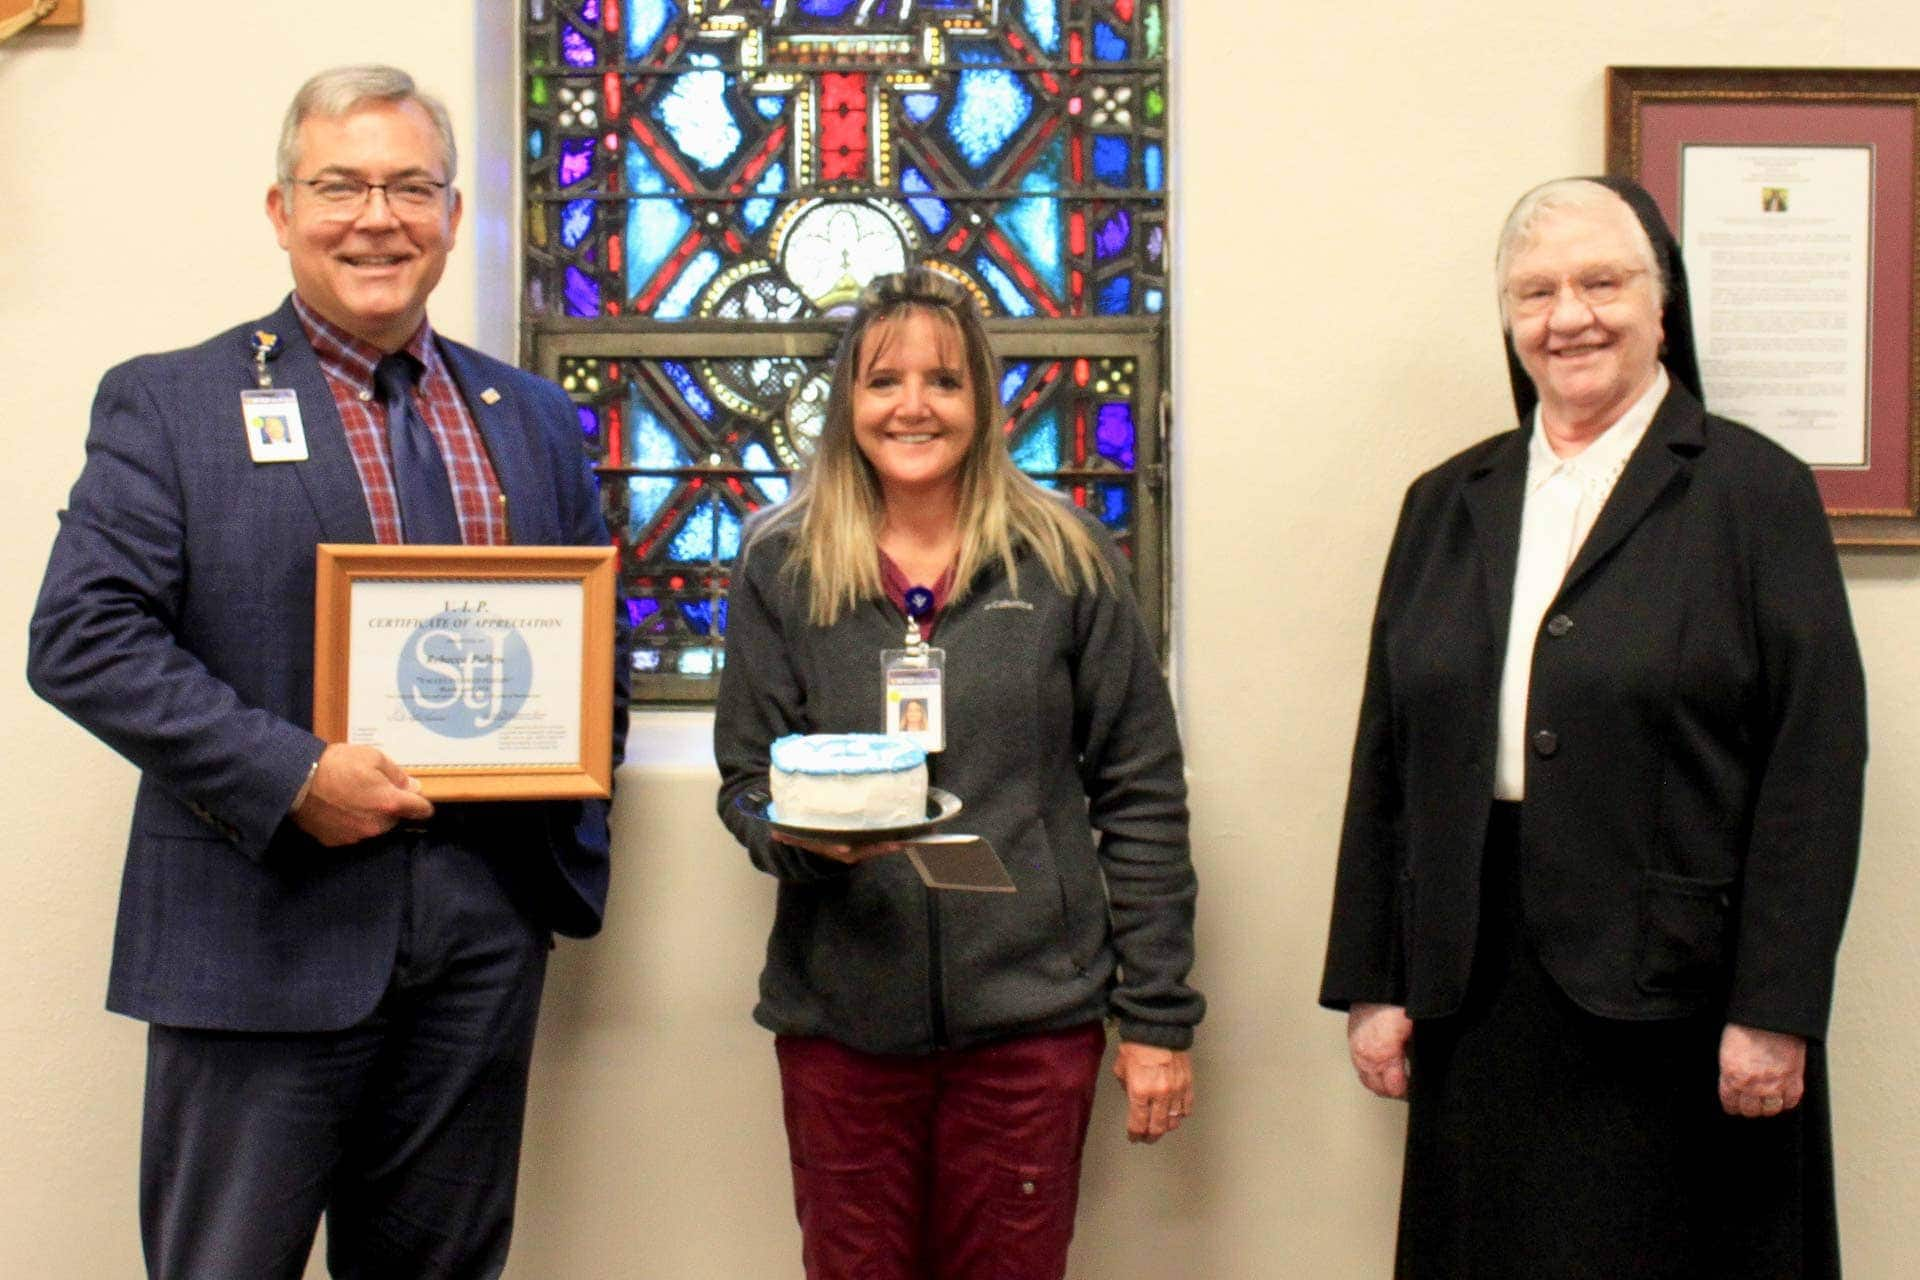 Skip Gjolberg, President of St. Joseph's Hospital, and Sister Francesca Lowis, Vice President of Mission Integration, present the VIP Award to Becky Pullen.